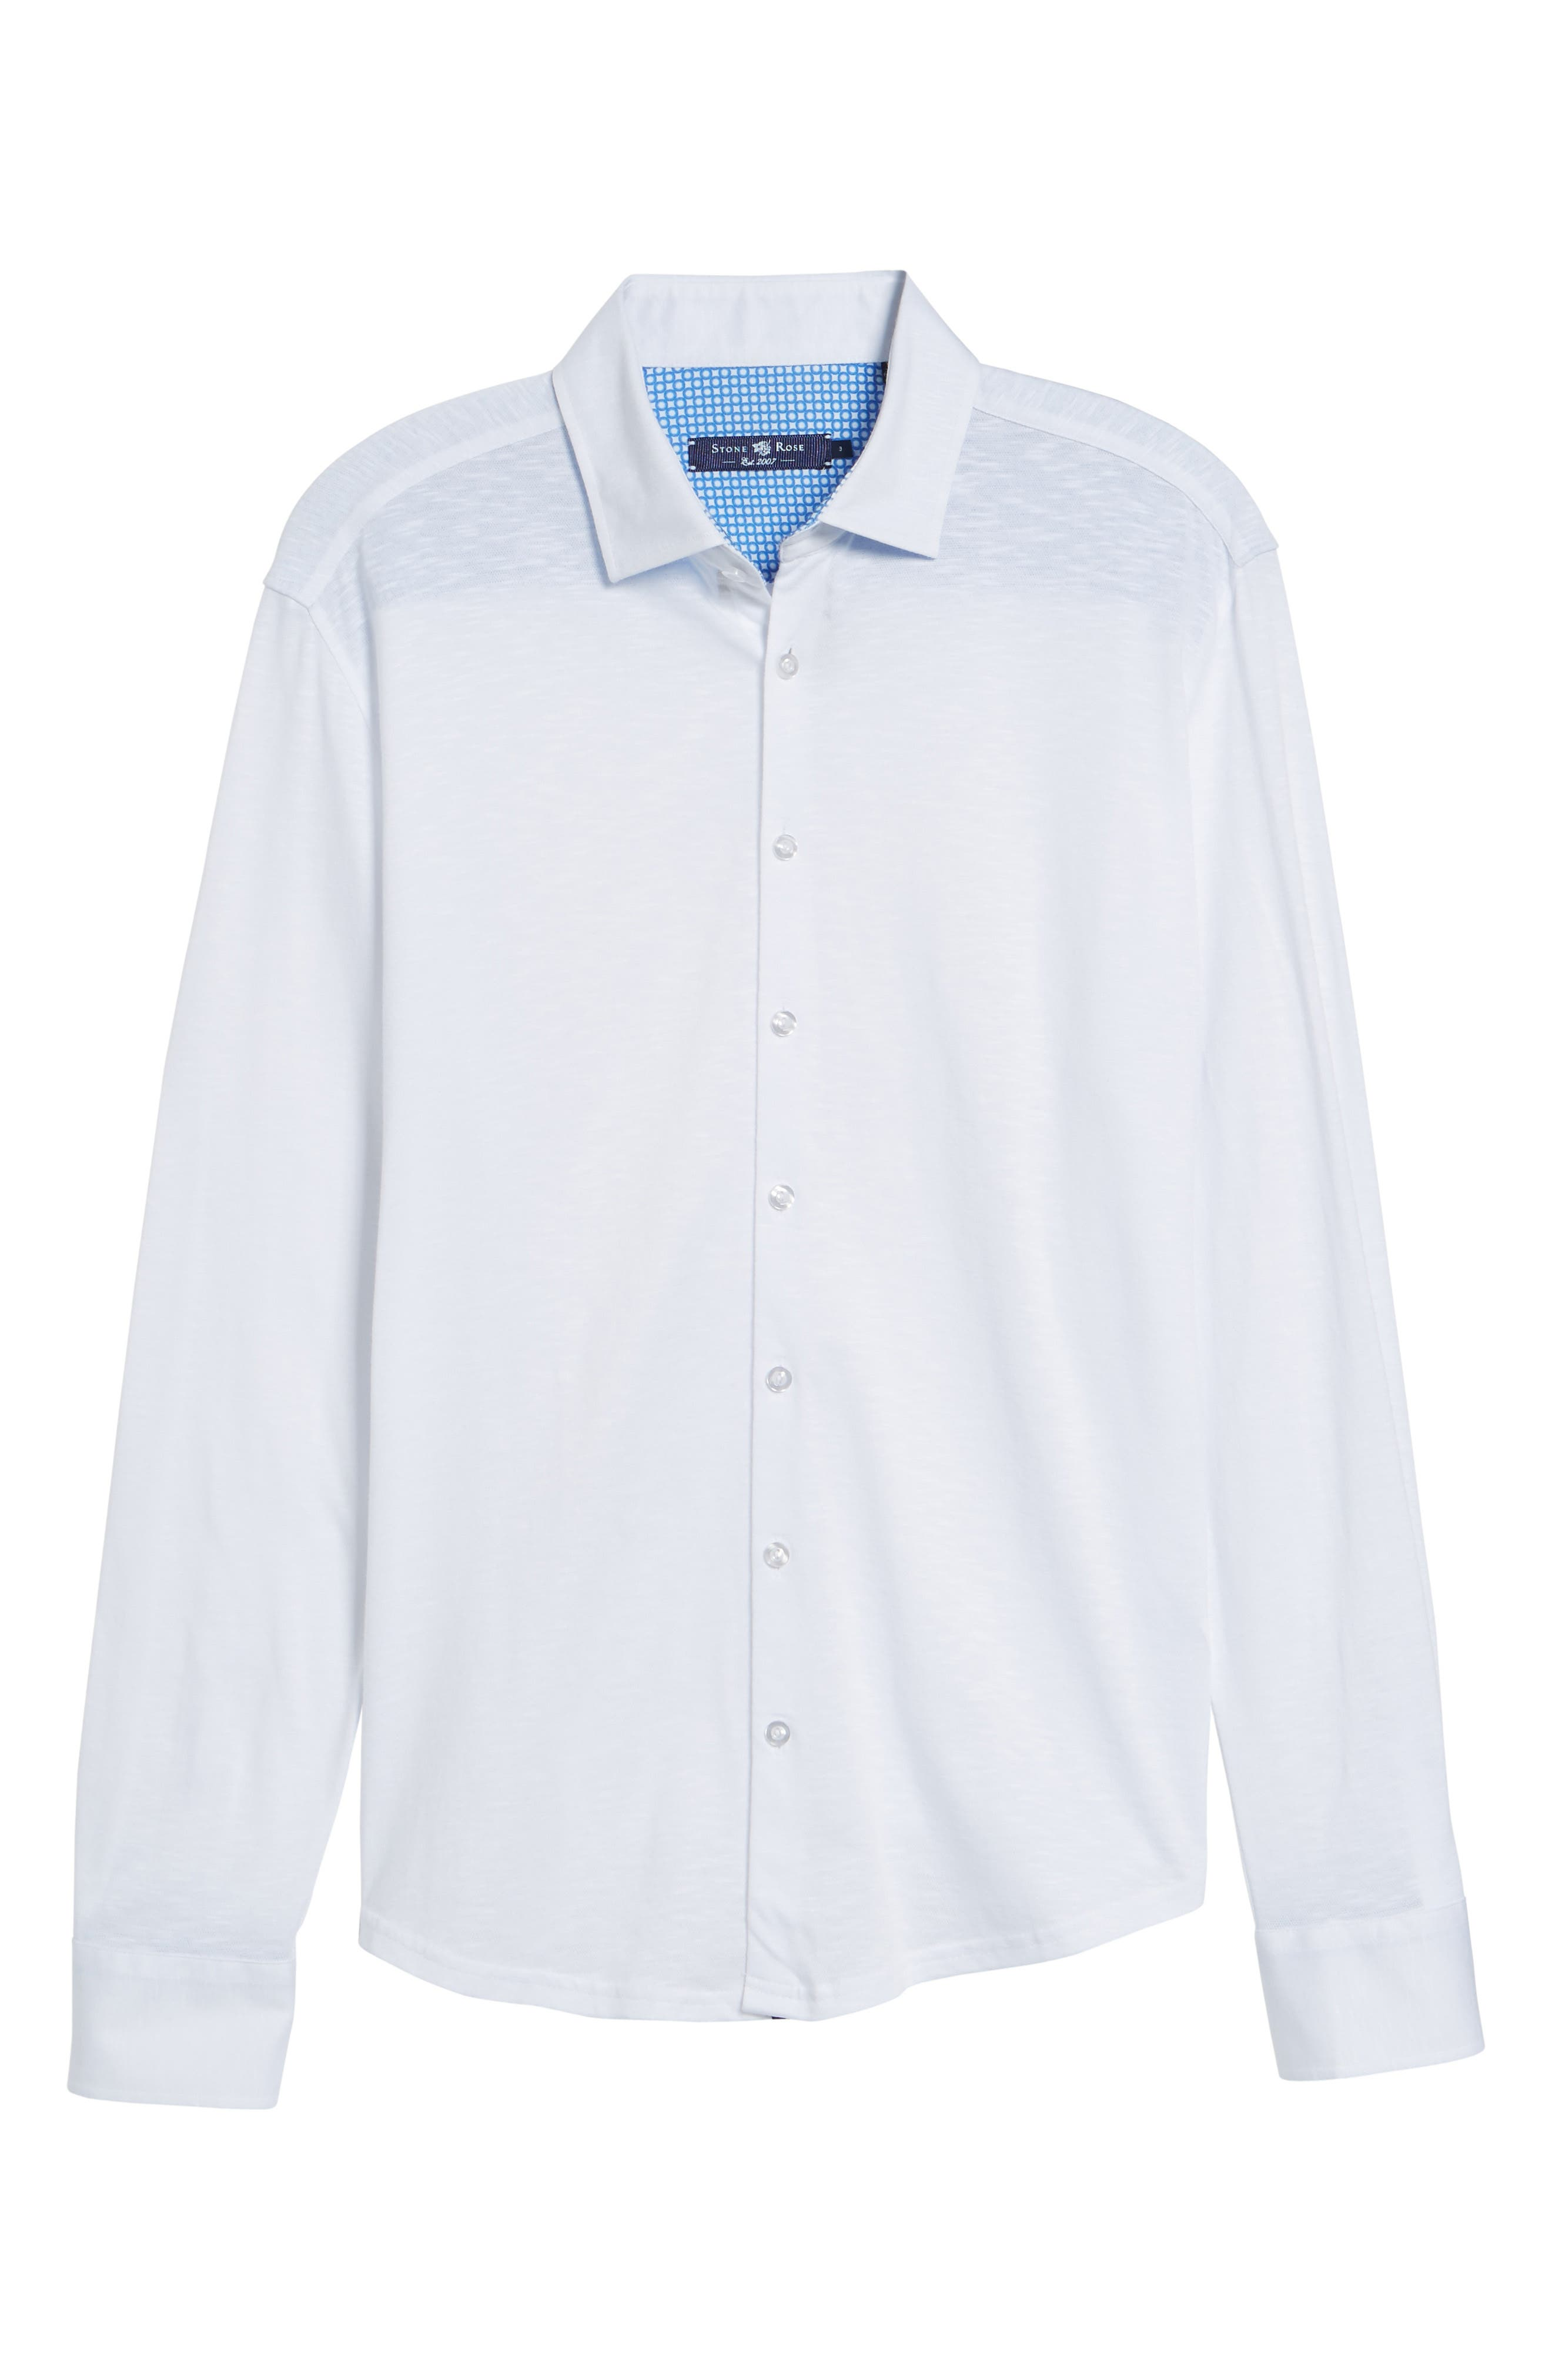 Flame Contemporary Fit Sport Shirt,                             Alternate thumbnail 6, color,                             White